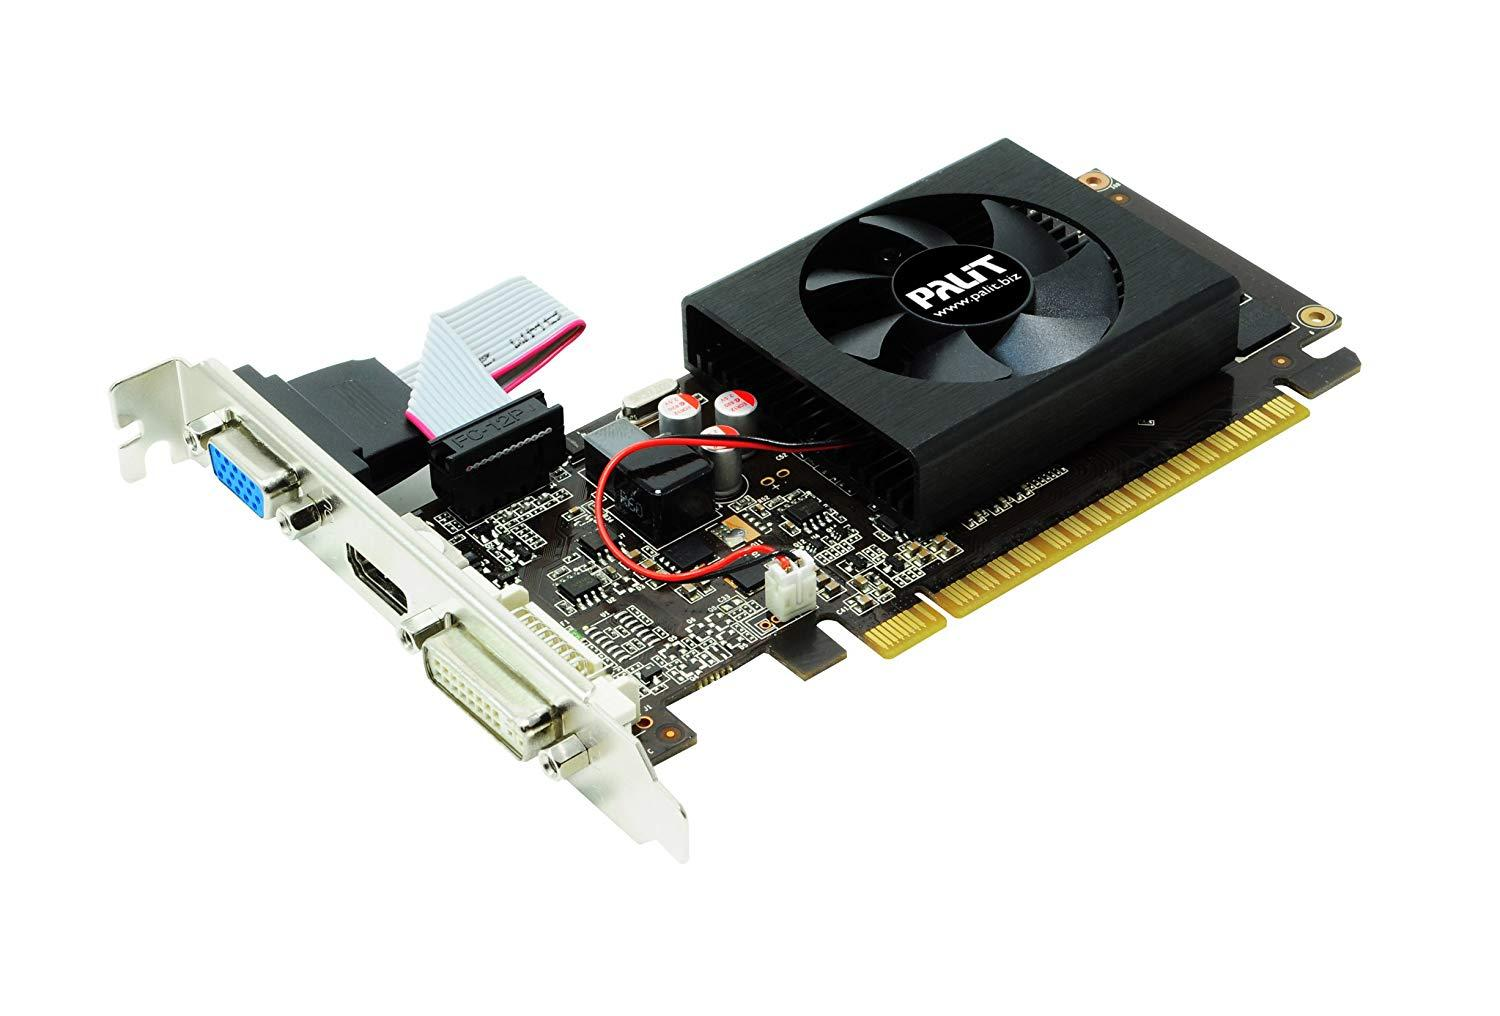 Palit GeForce GT 610 - graphics & Gameing Card - GF GT 610 - 1 GB PCI Express 2.0 x16